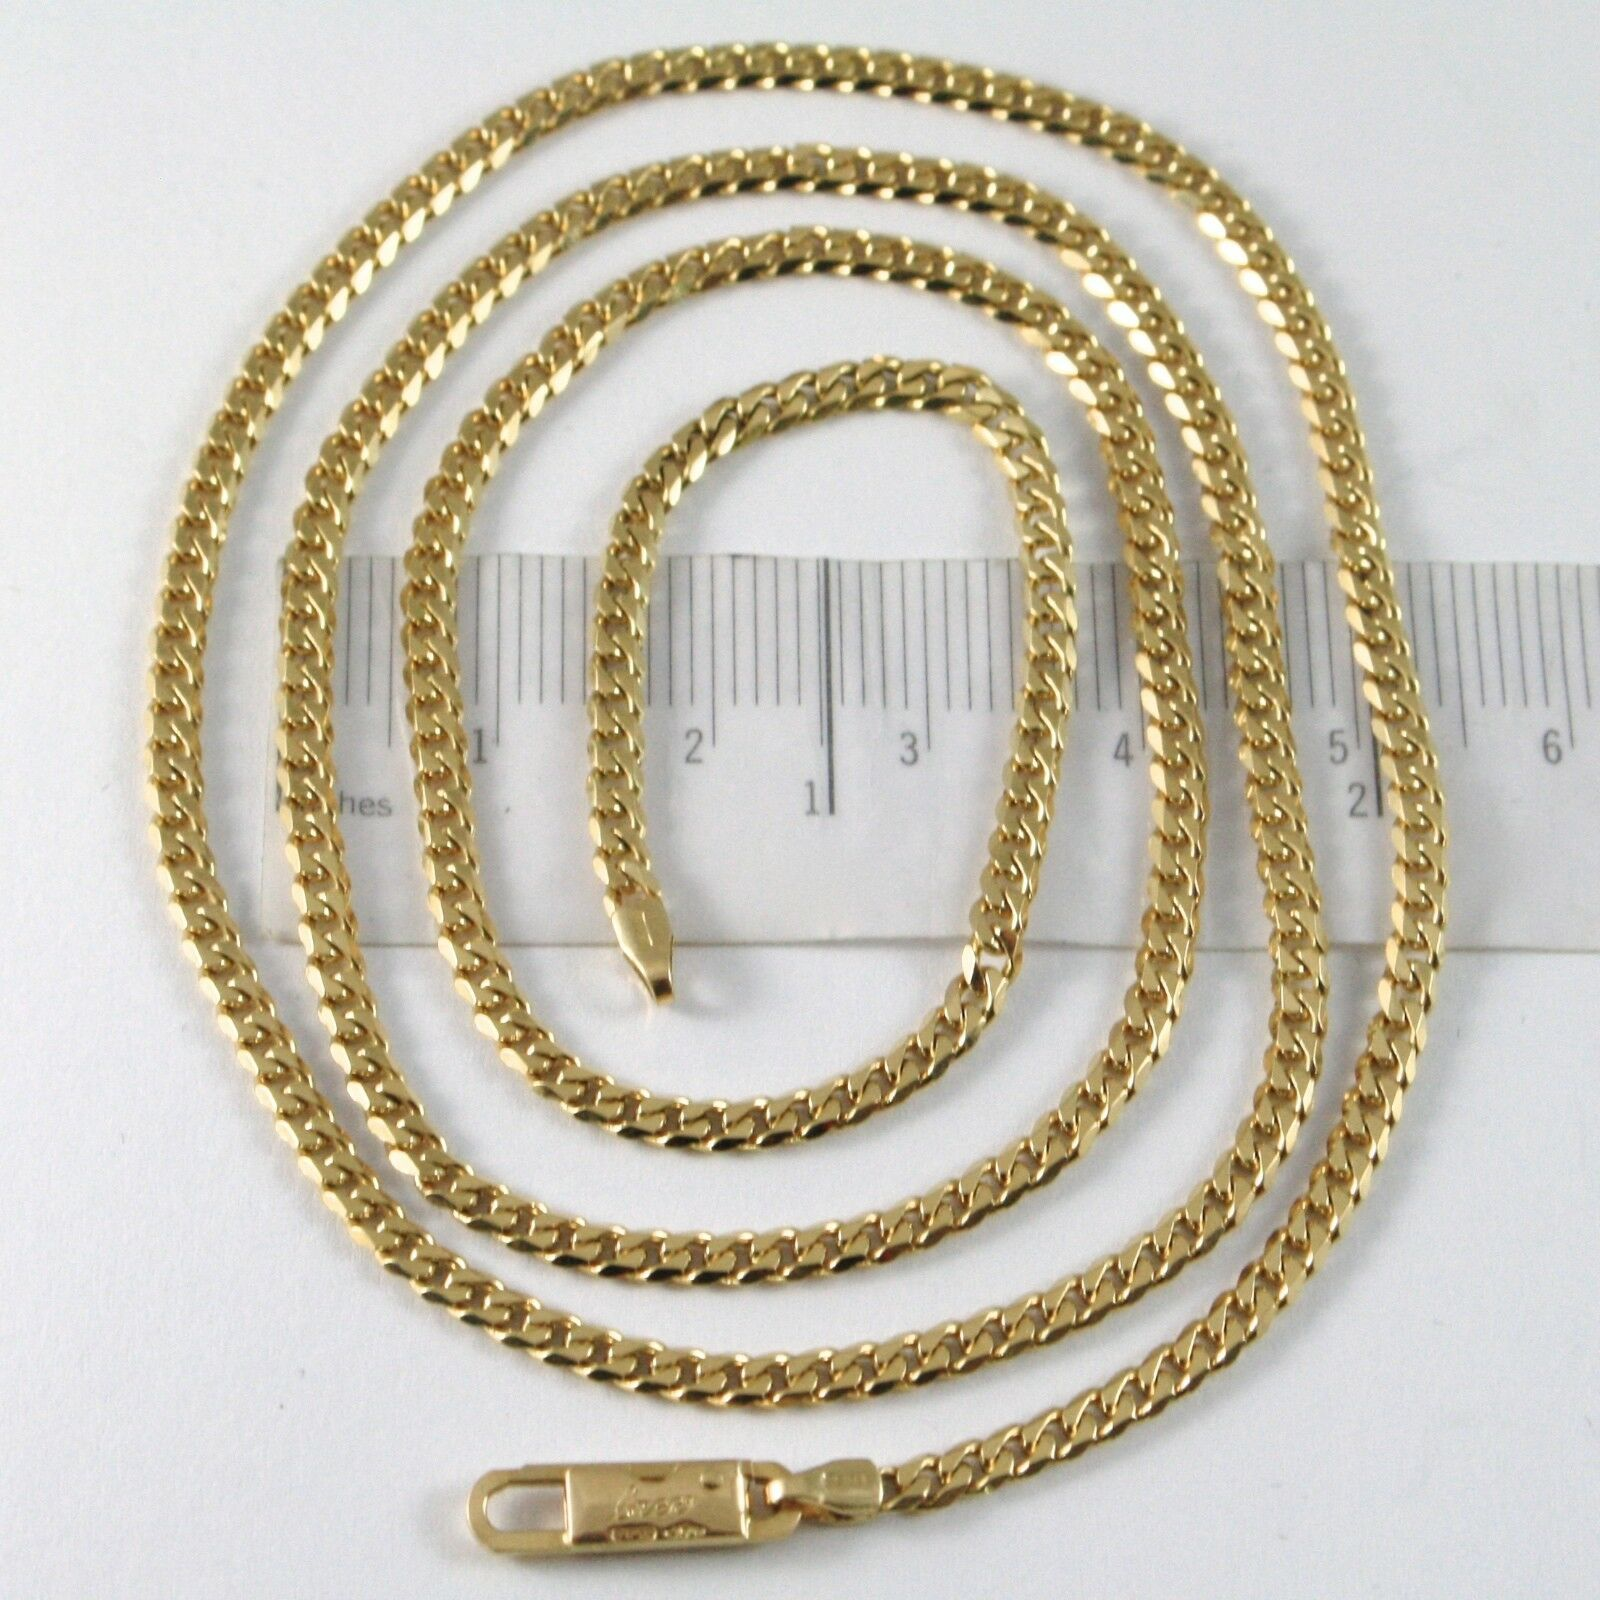 DIFFERENCE FOR 18K GOLD GOURMETTE CUBAN CURB CHAIN 2.8 MM, USER luv_lux40